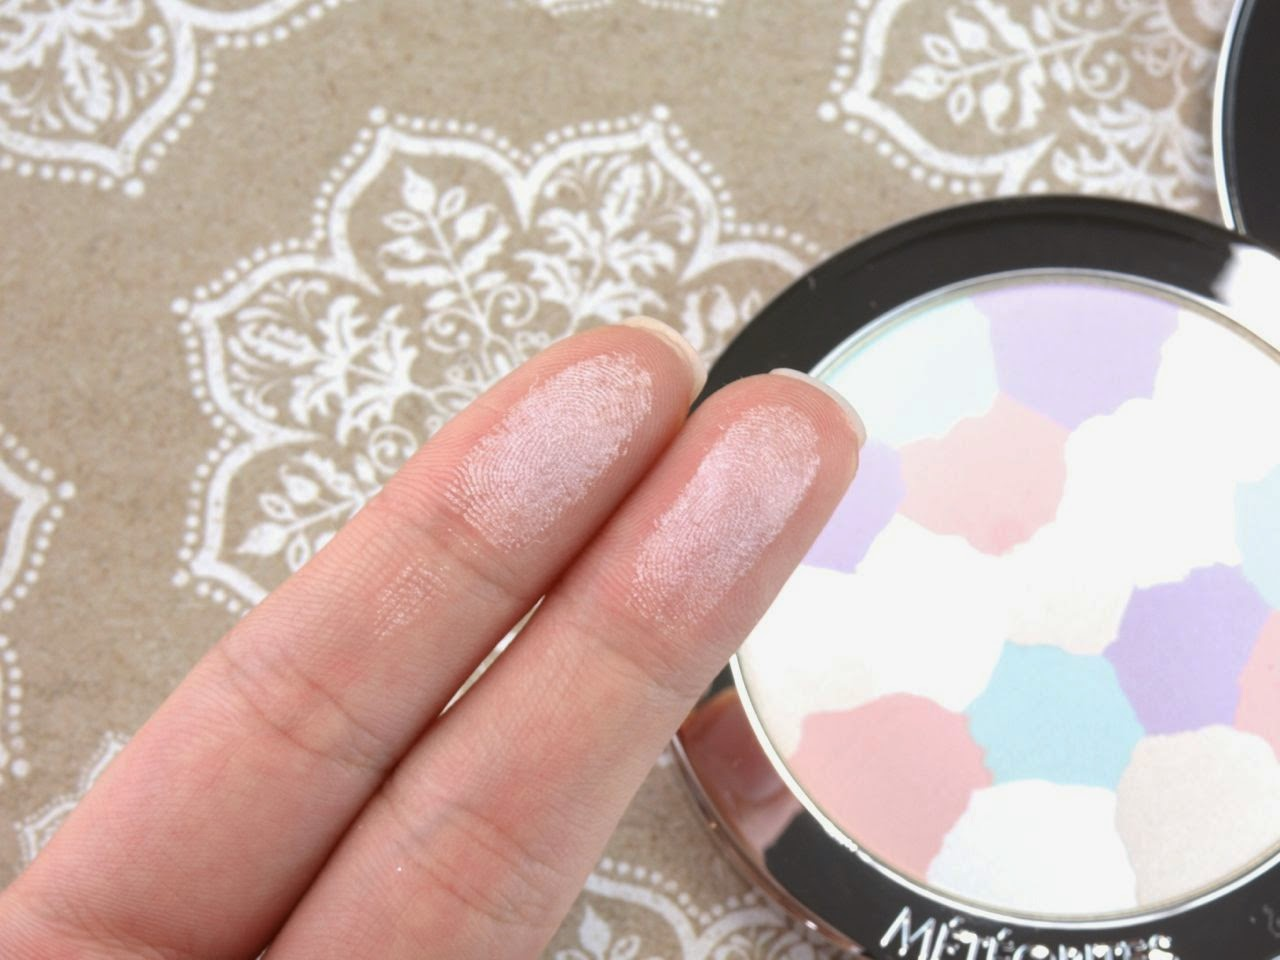 2019 year look- Tendres les guerlain spring makeup collection